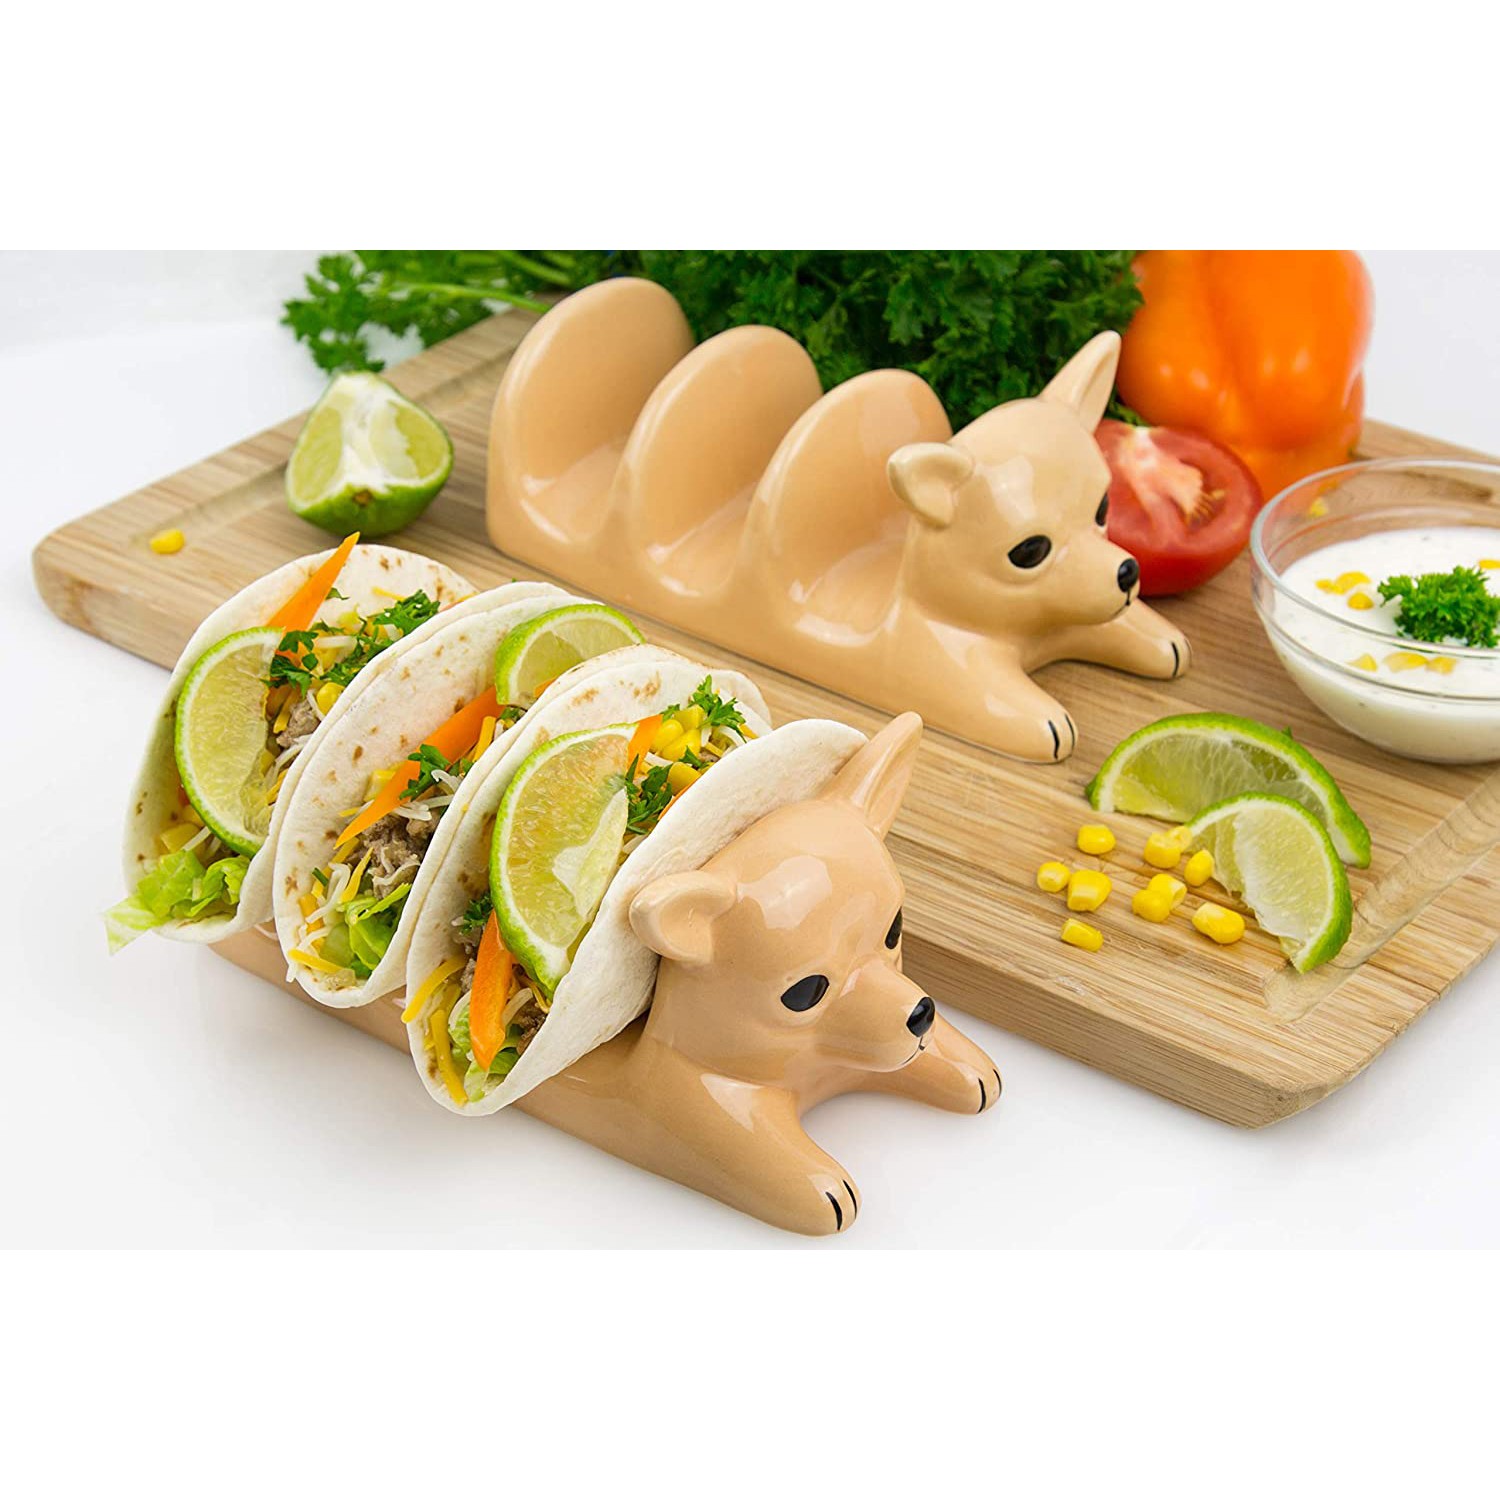 side by side Decorative Ceramic Dog Taco Holder with tacos and taco fixings